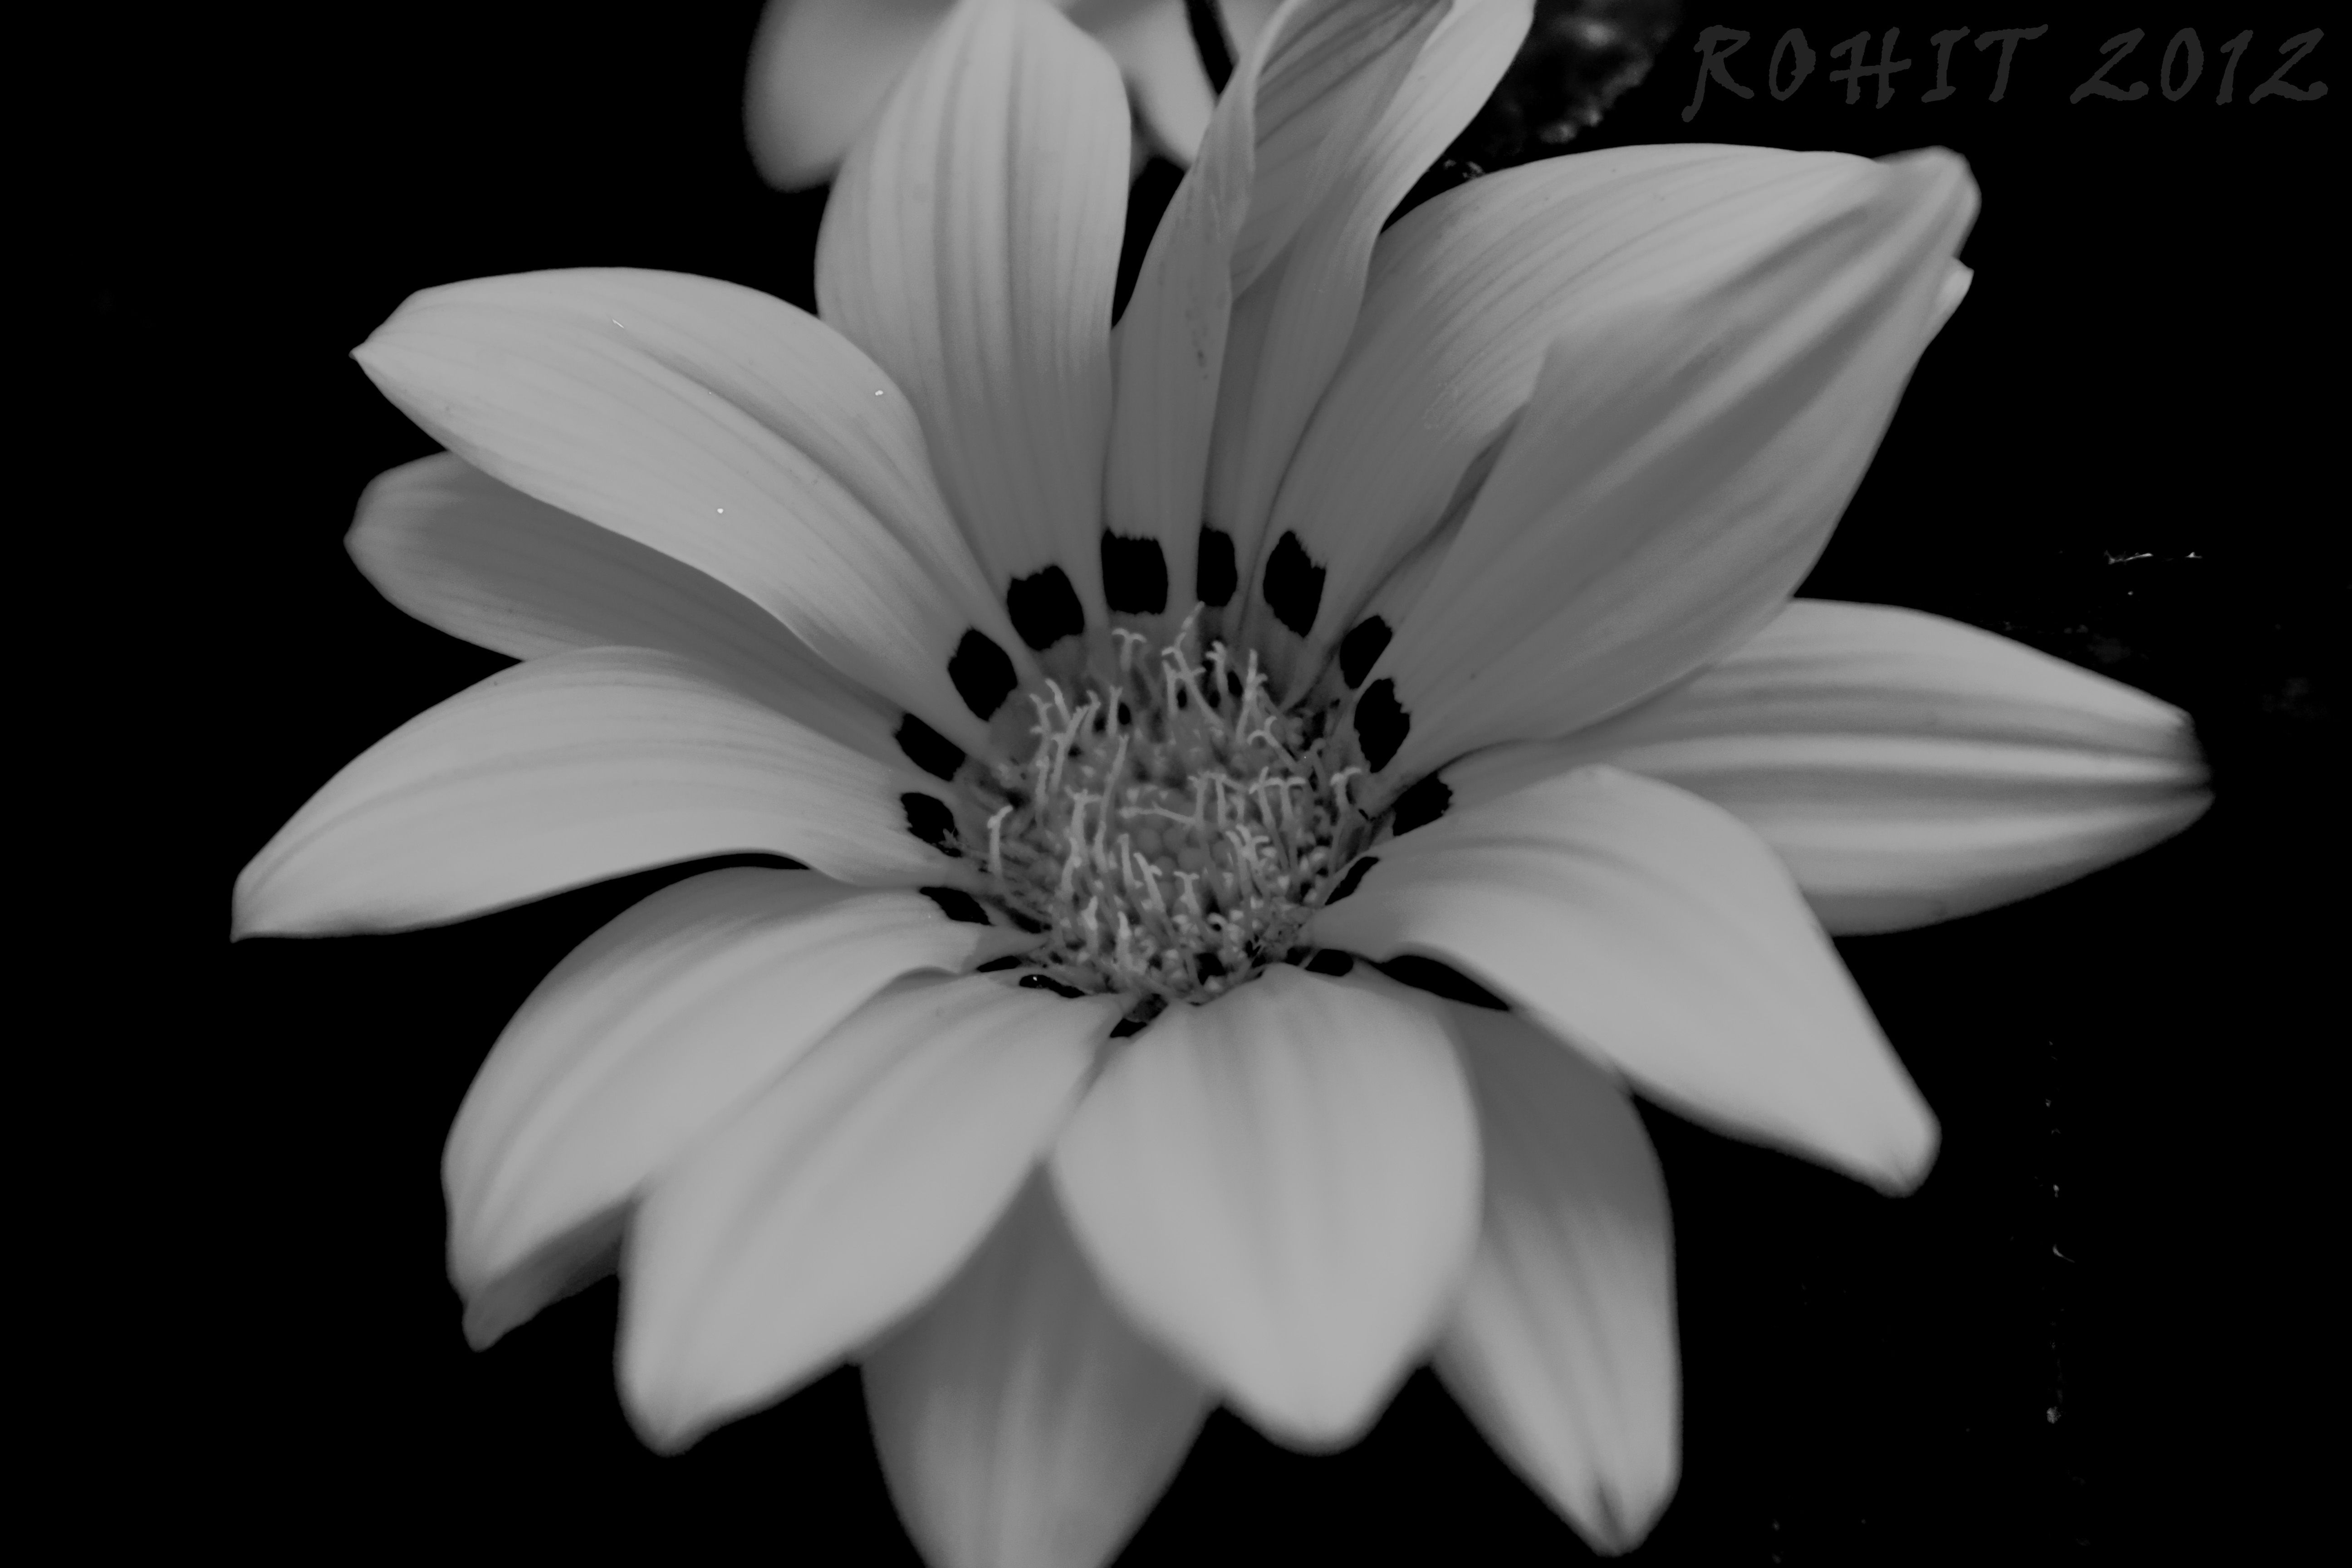 Flower Black And White Hd Background Wallpaper 28 Wallpapers